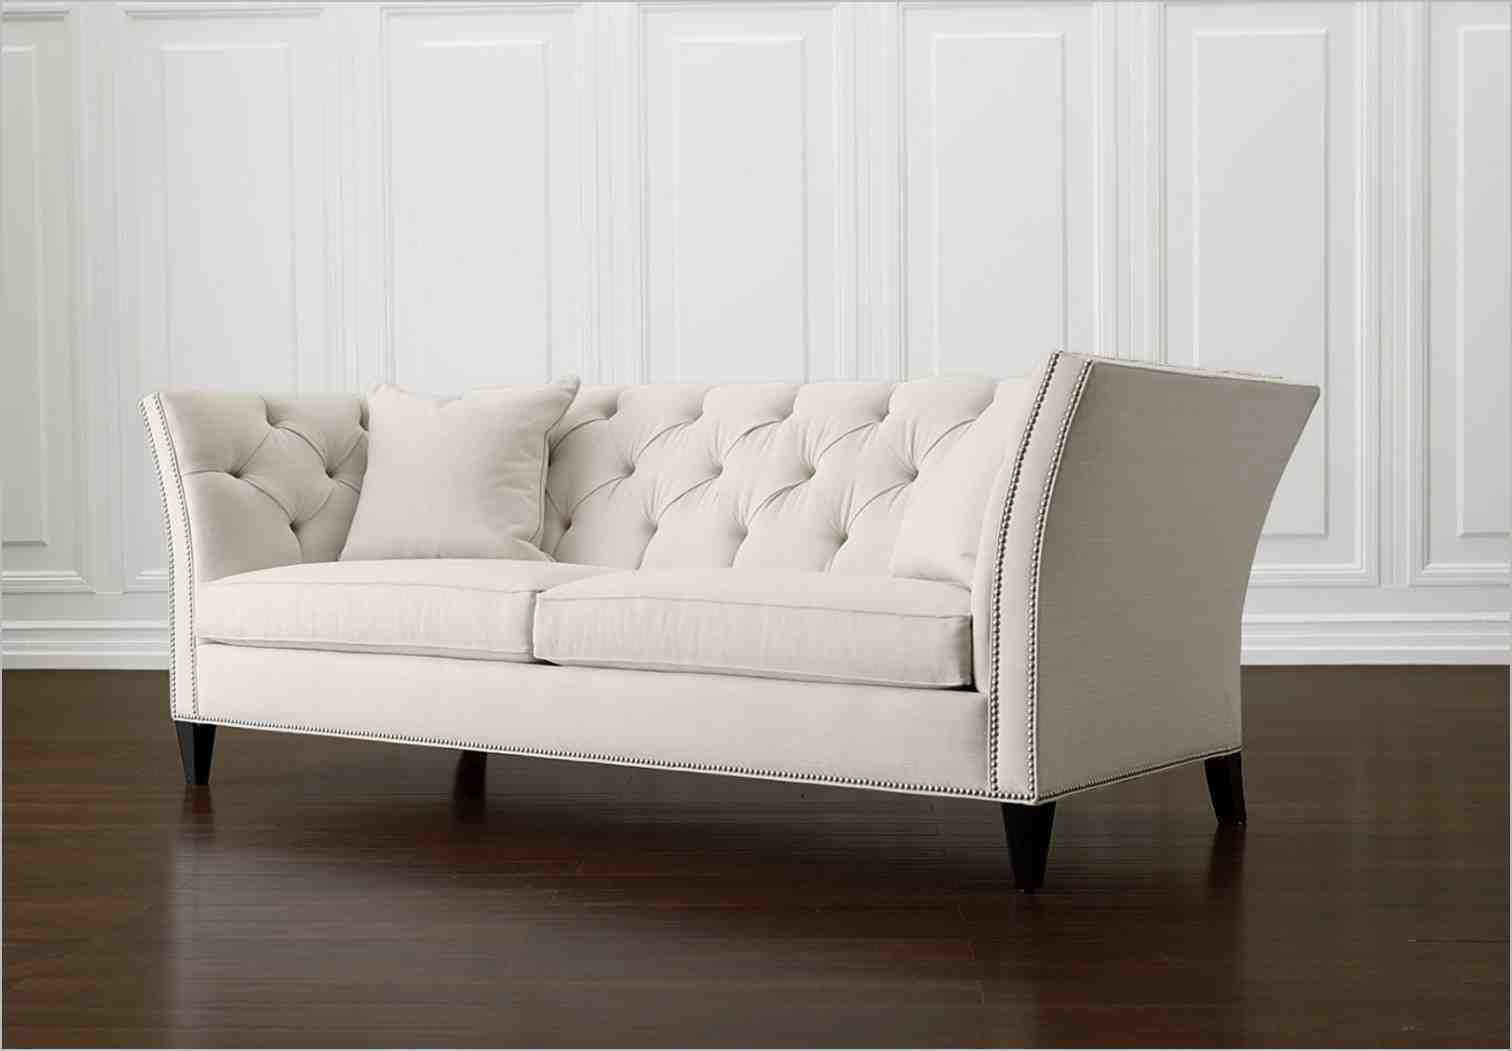 Ethan Allen Furniture ~ Ethan allen furniture sofas home design